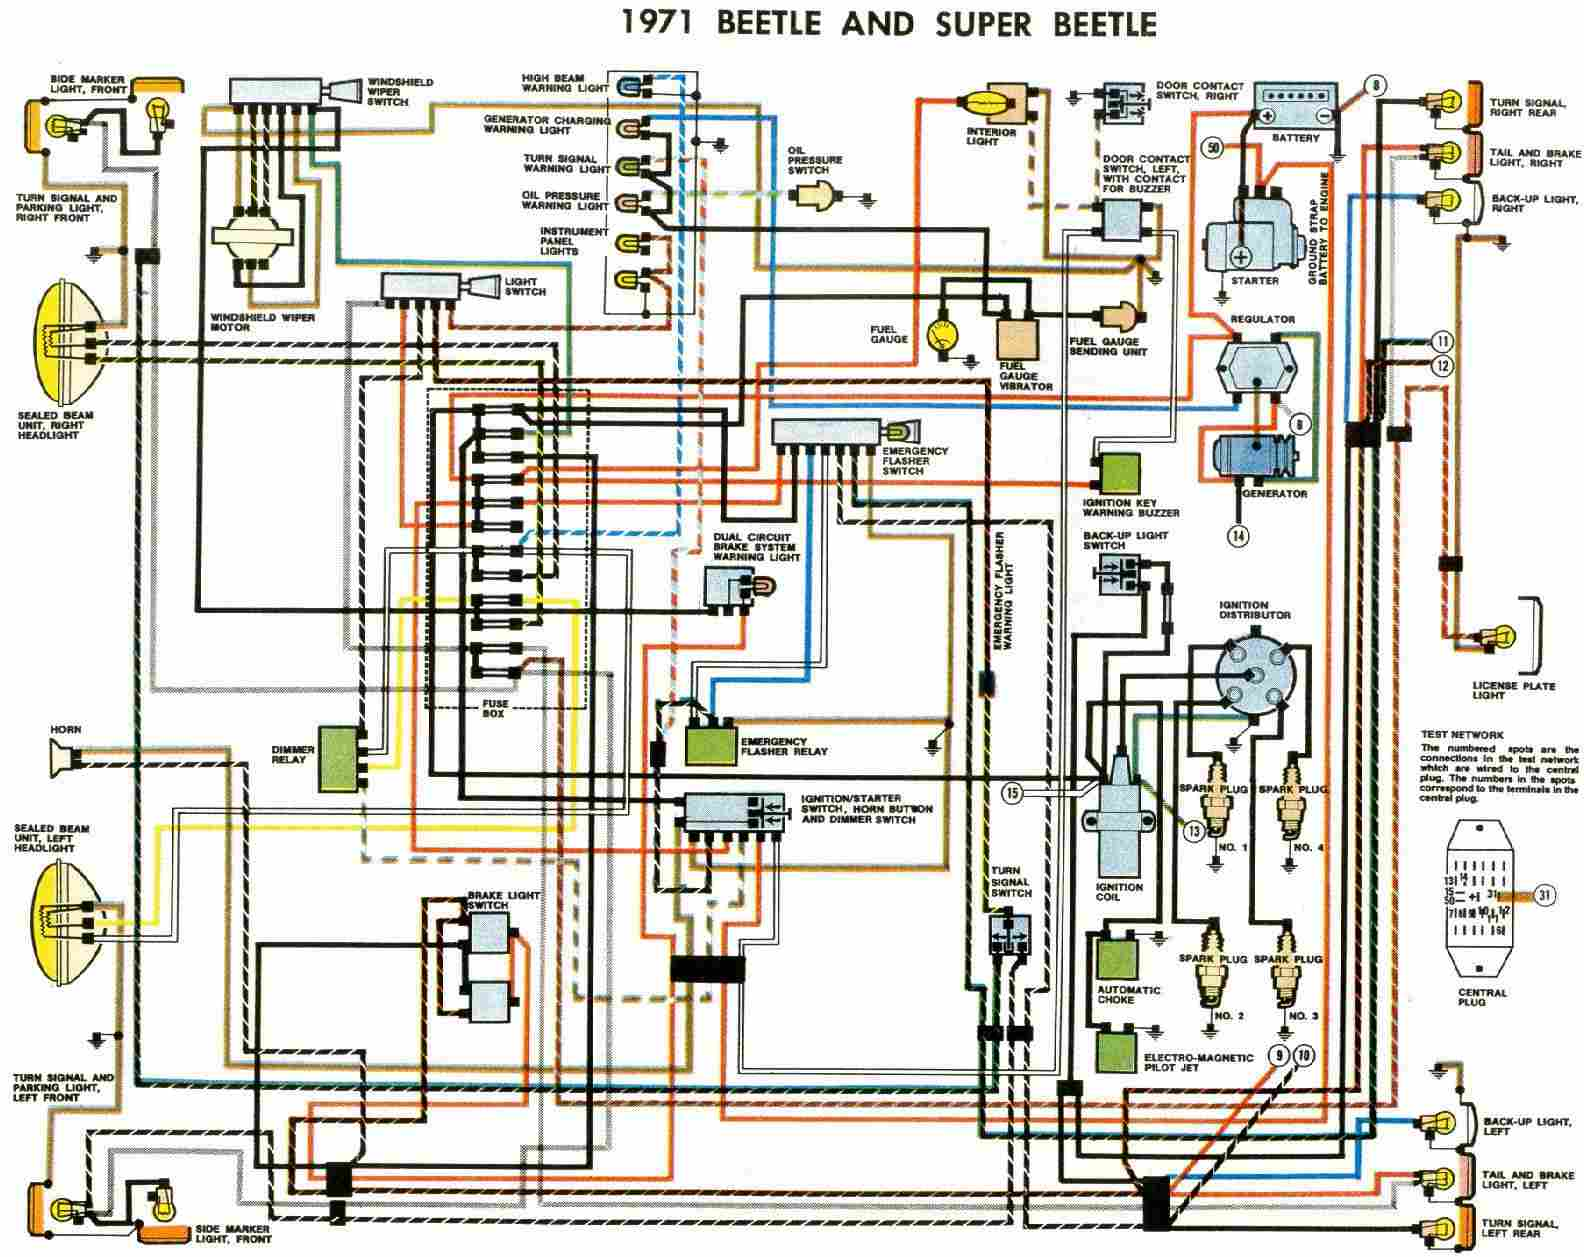 1969 mustang wiring diagrams color coded with Chevy Hei Ignition Wiring Diagram on Index php additionally 4bocc Ford Escape Hybrid 2007 Ford Escape Hybrid Cd Player Overheated together with Album page besides Olds 2002 Alero 2 2l Abs Wiring Diagram as well 936674 Maf Conversion Questions.